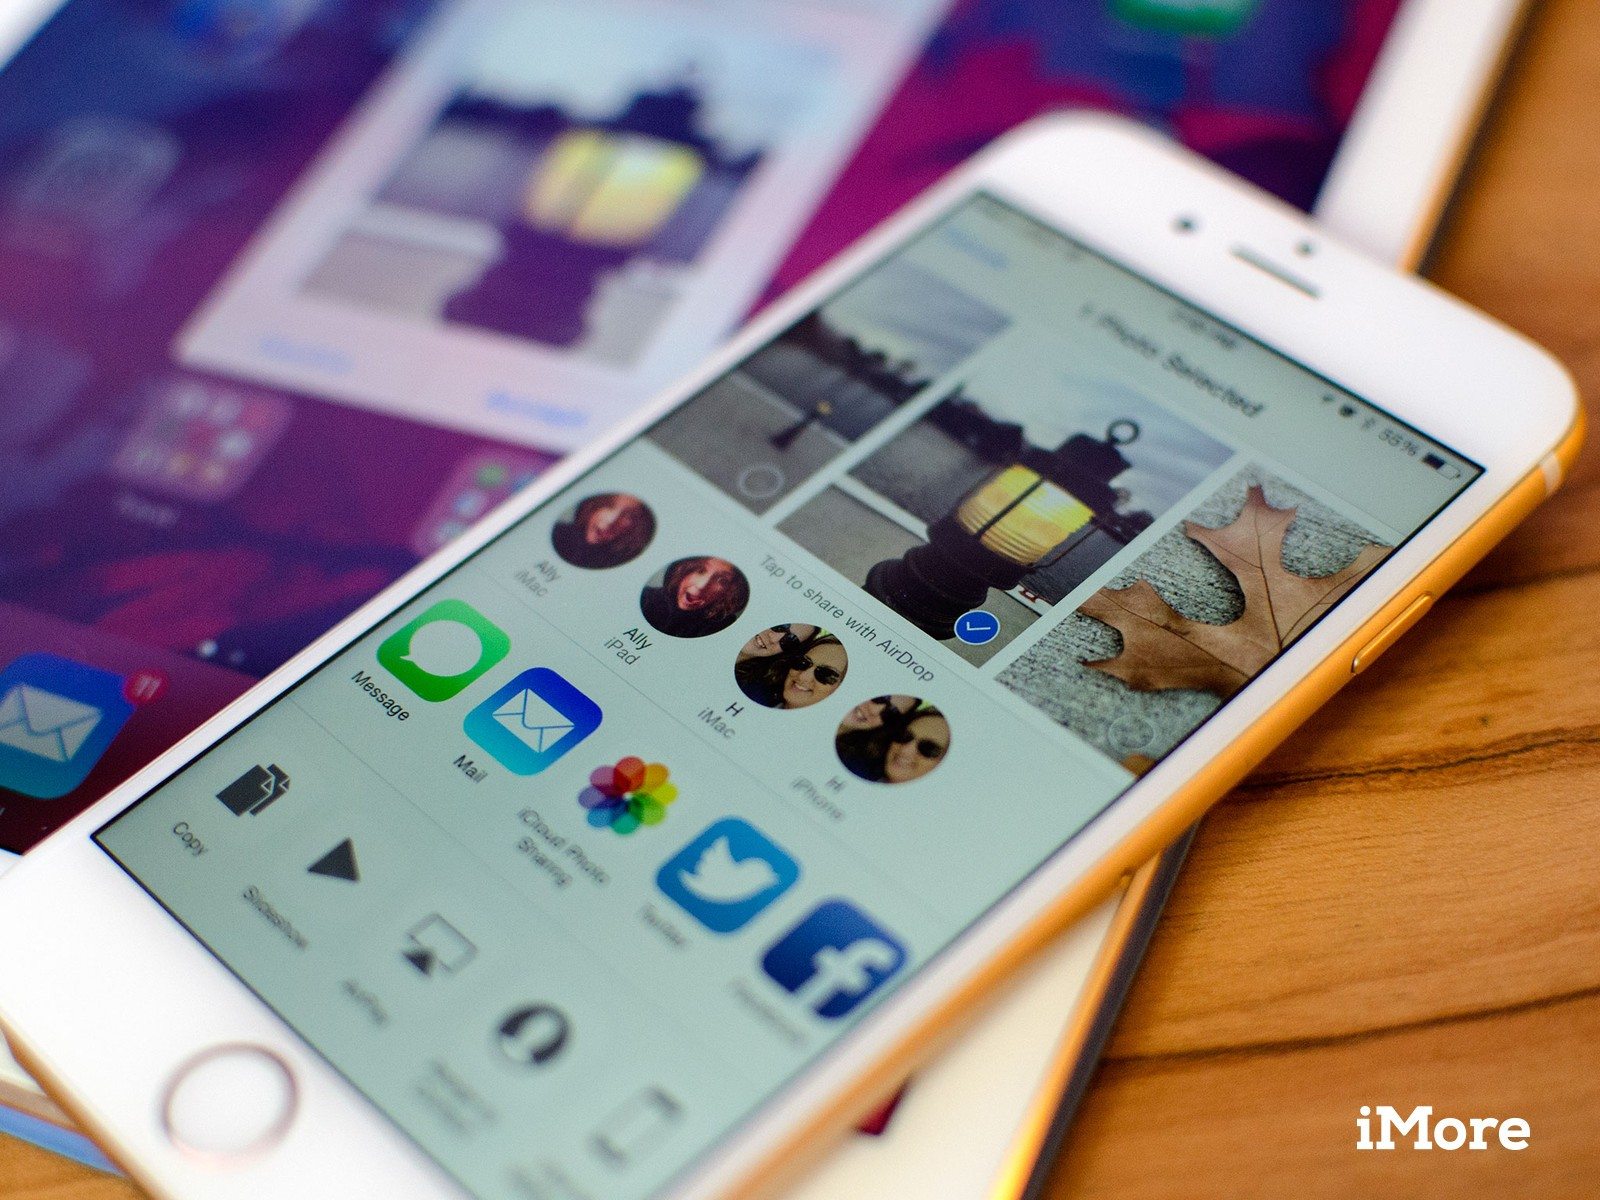 How to AirDrop files between iPhone and iPad